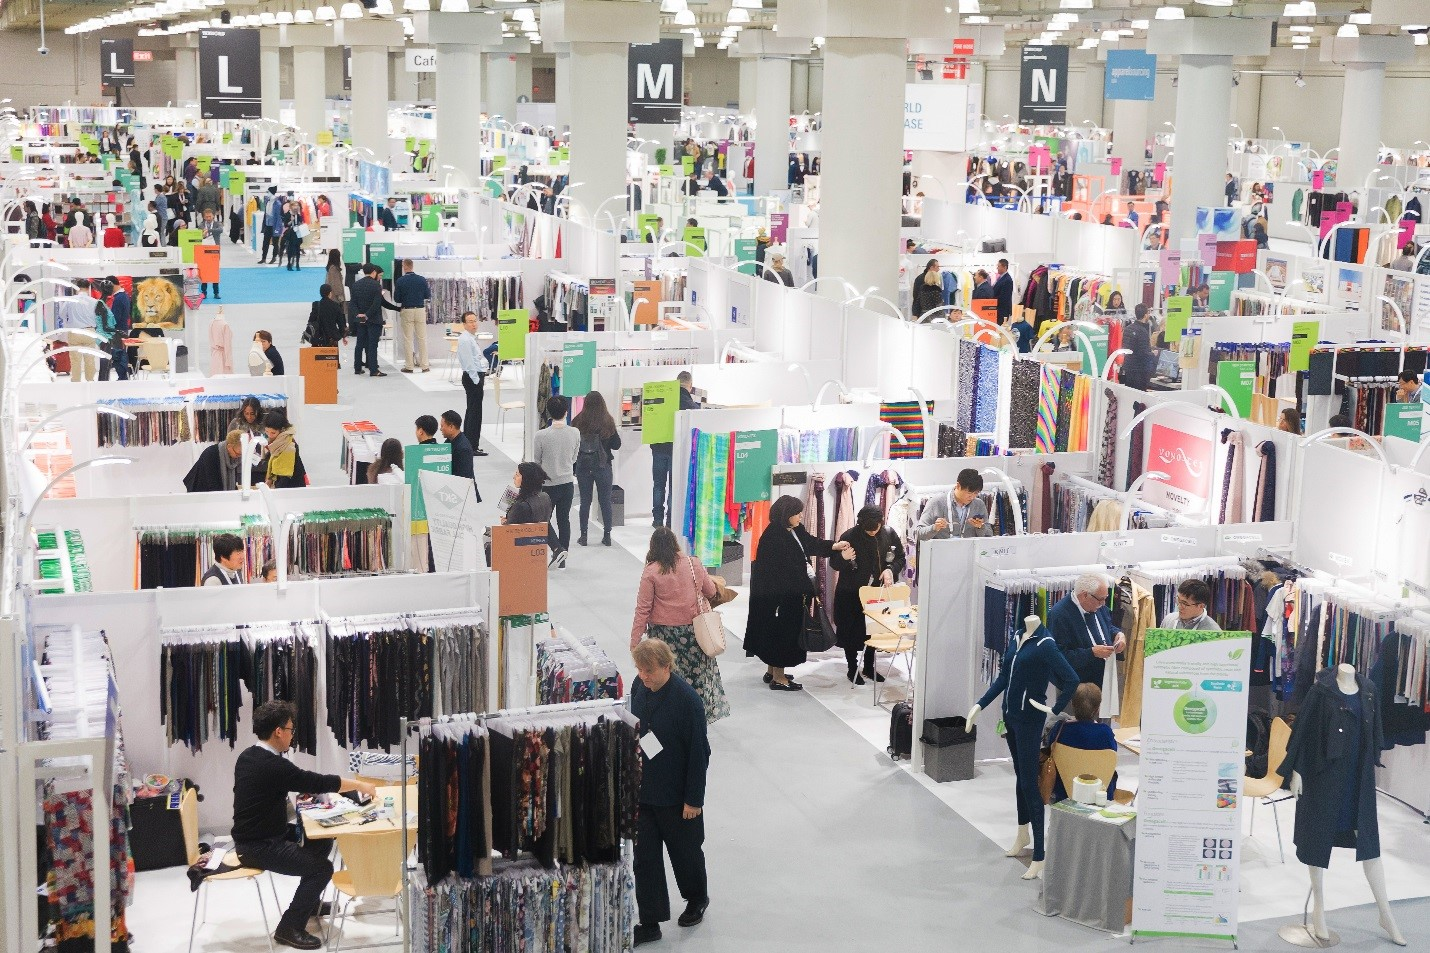 Texworld USA returns to the Javits Convention Center January 21-23, 2019 with a wide variety of exhibitors from around the world. Show highlights include new educational sessions, focus on sustainability, trend showcase that previews Spring/Summer 2019 color and textures